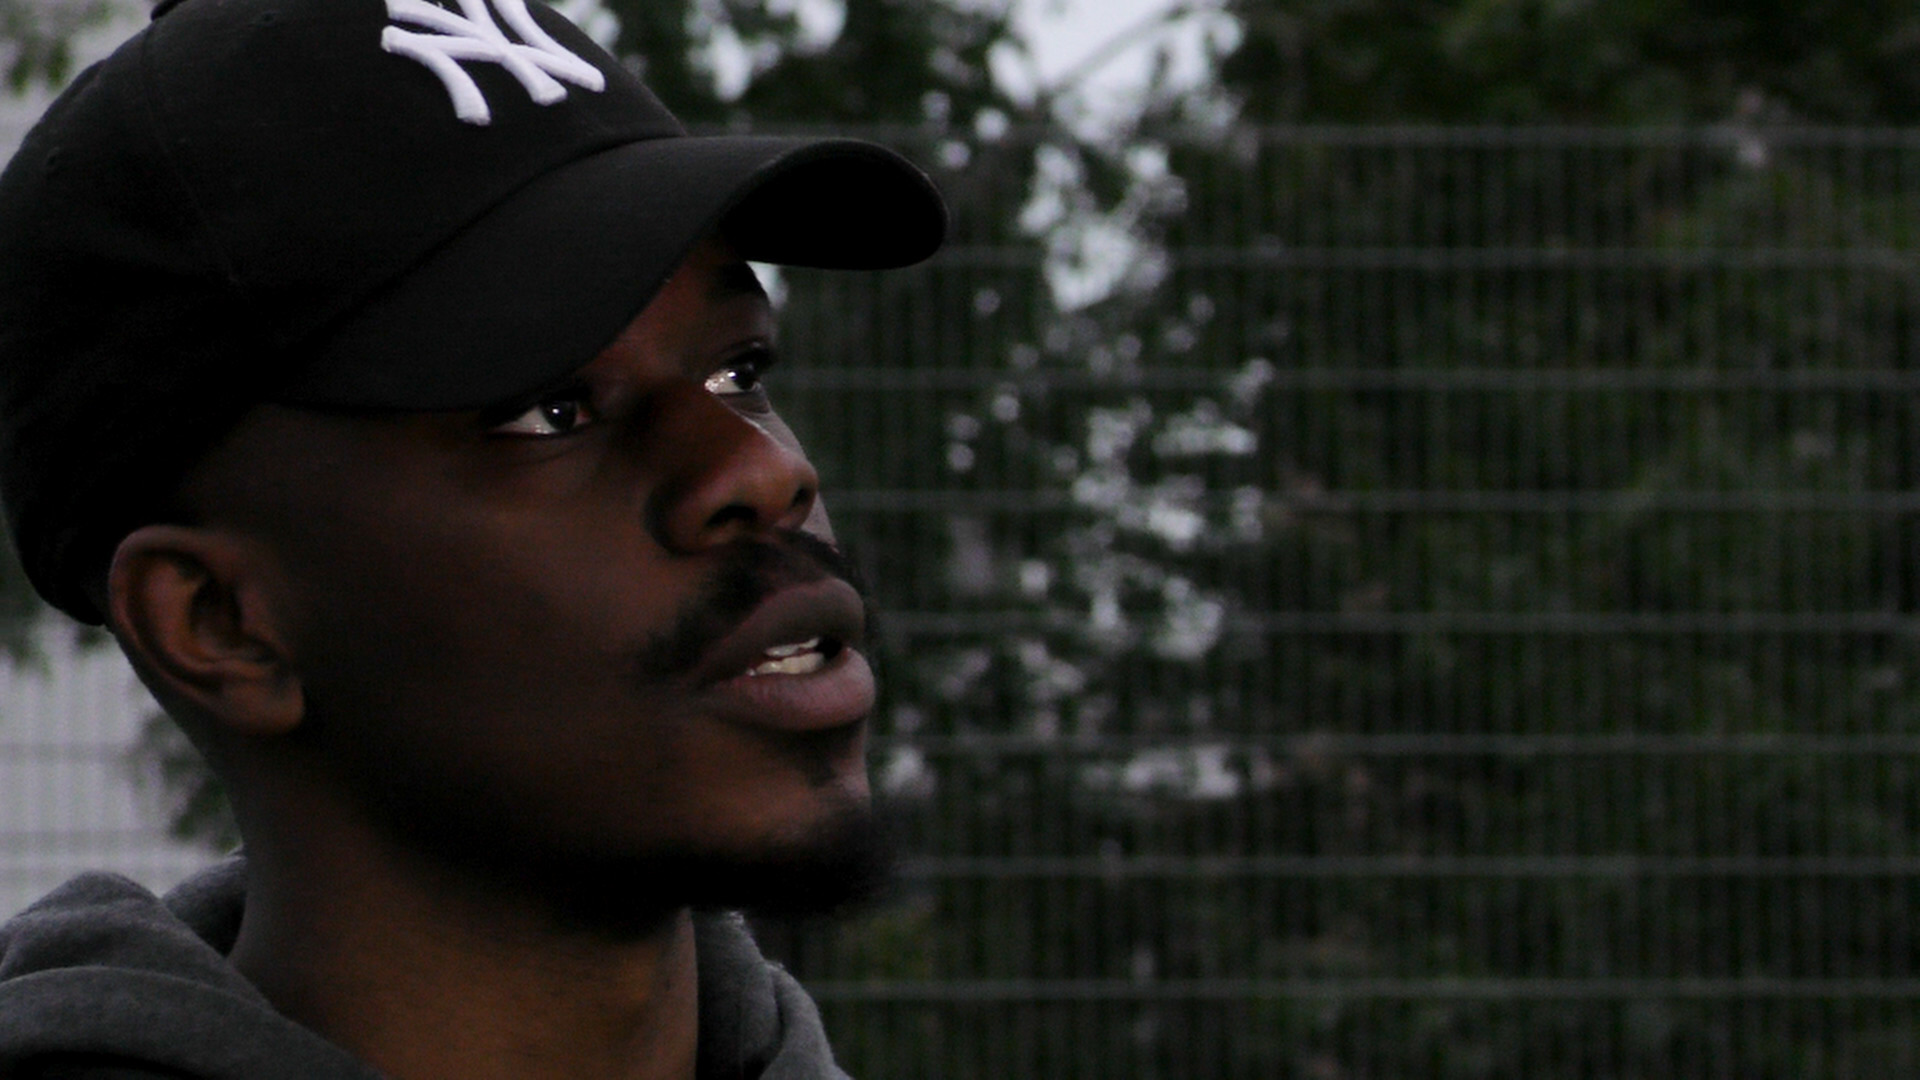 Still from Life Now, Movement Films Music Video of a close up of Jepeto Knockz looking off in the distance on a basketball court